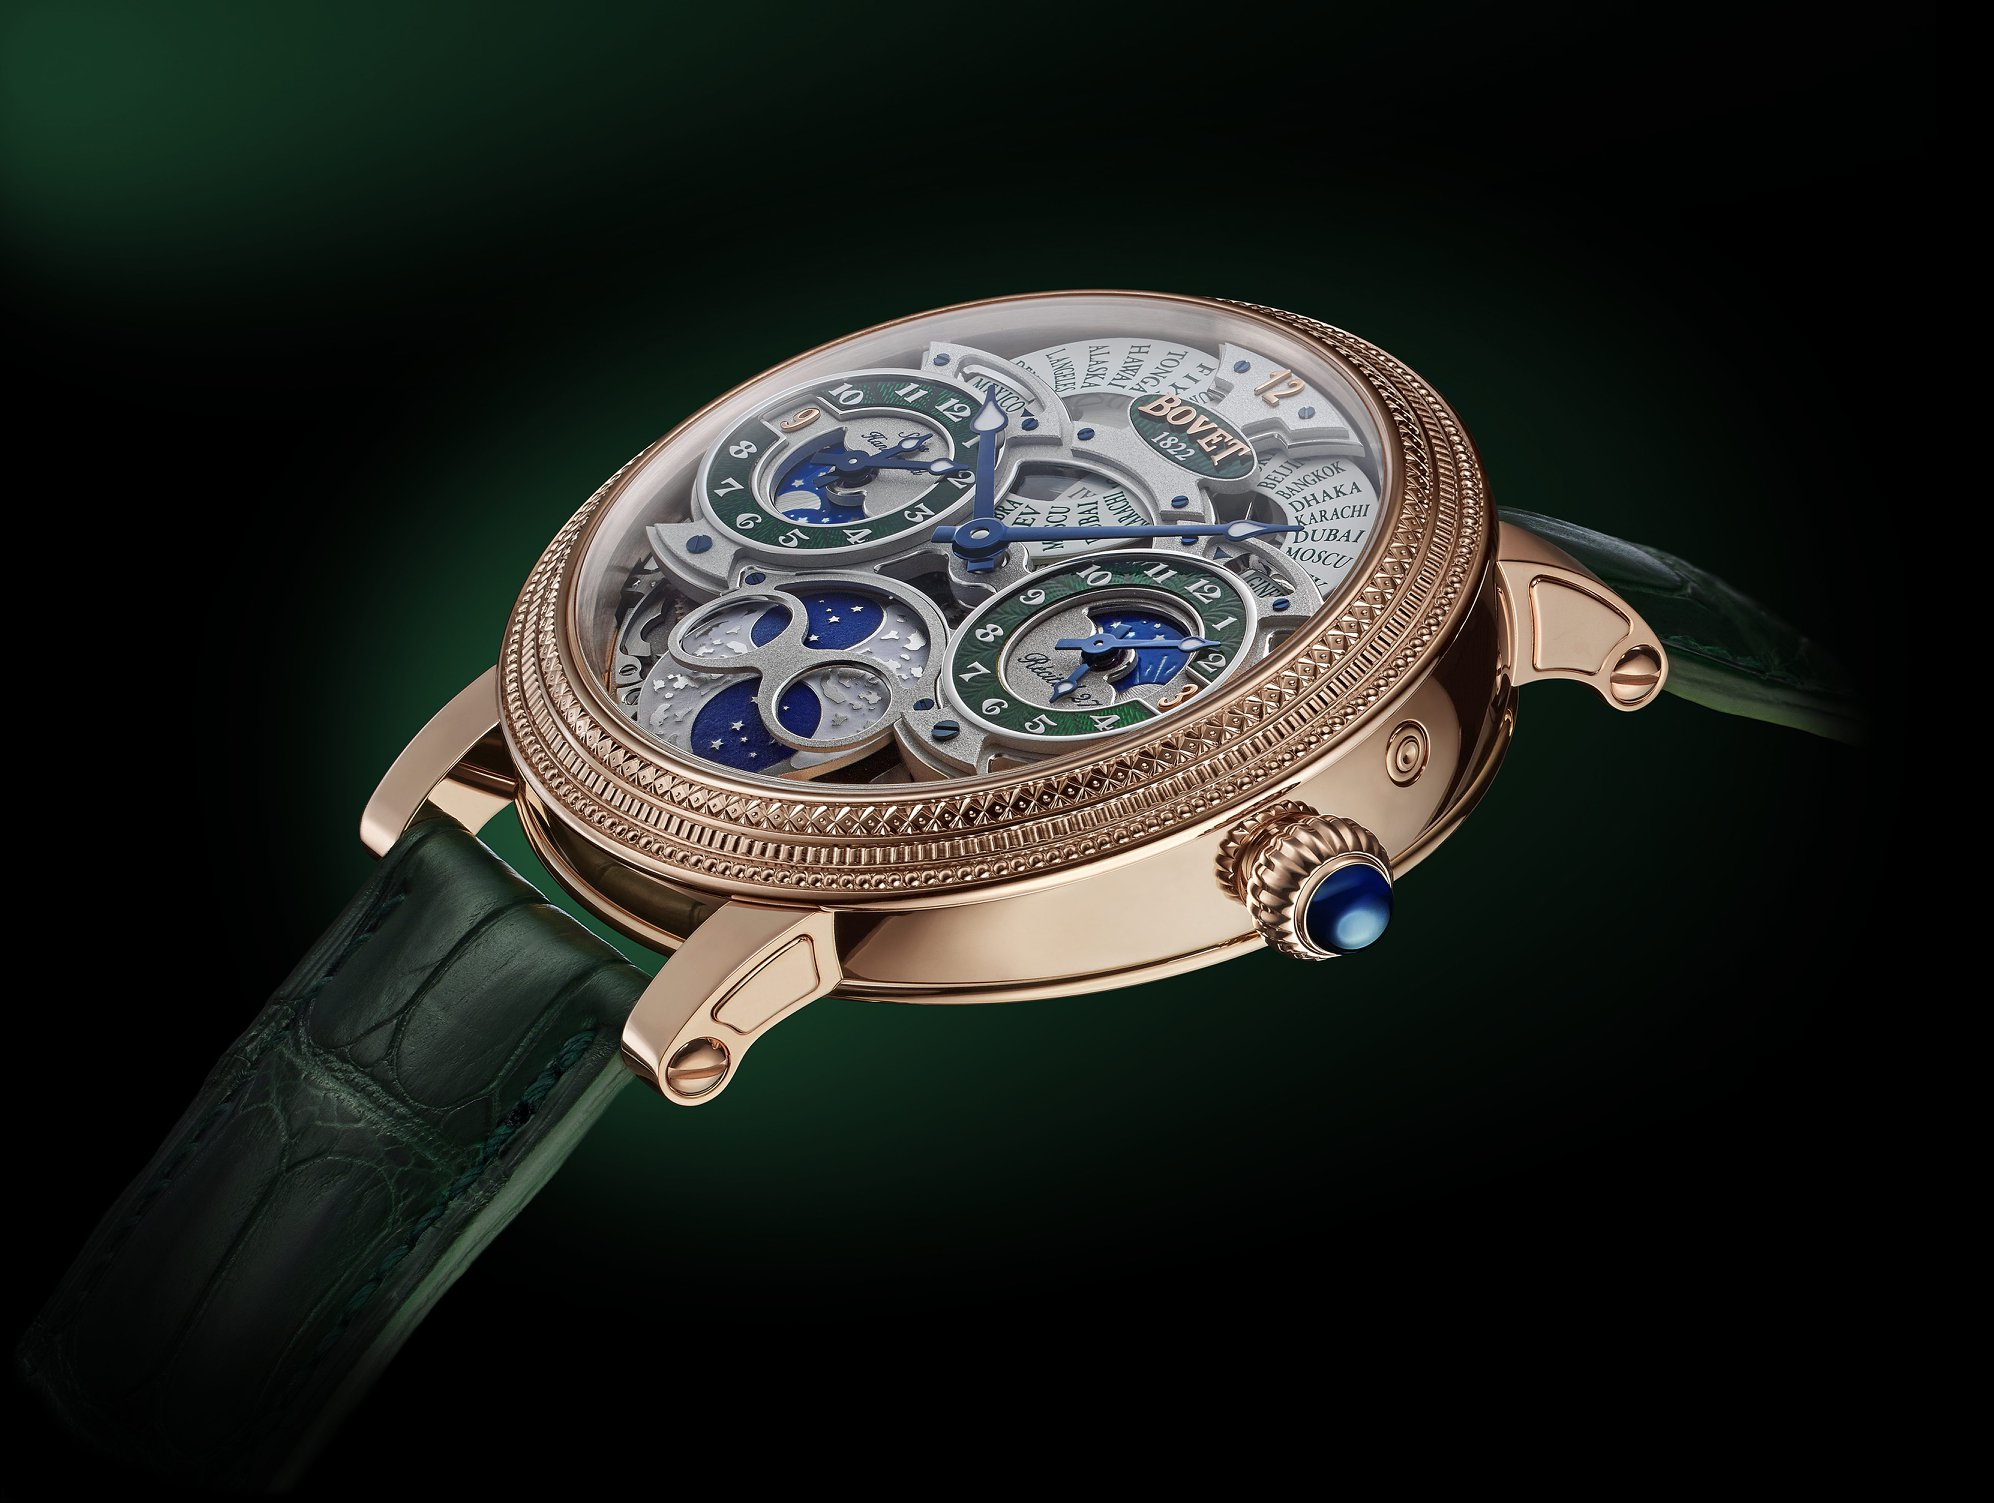 Bovet Récital 27 Mexico Limited Edition